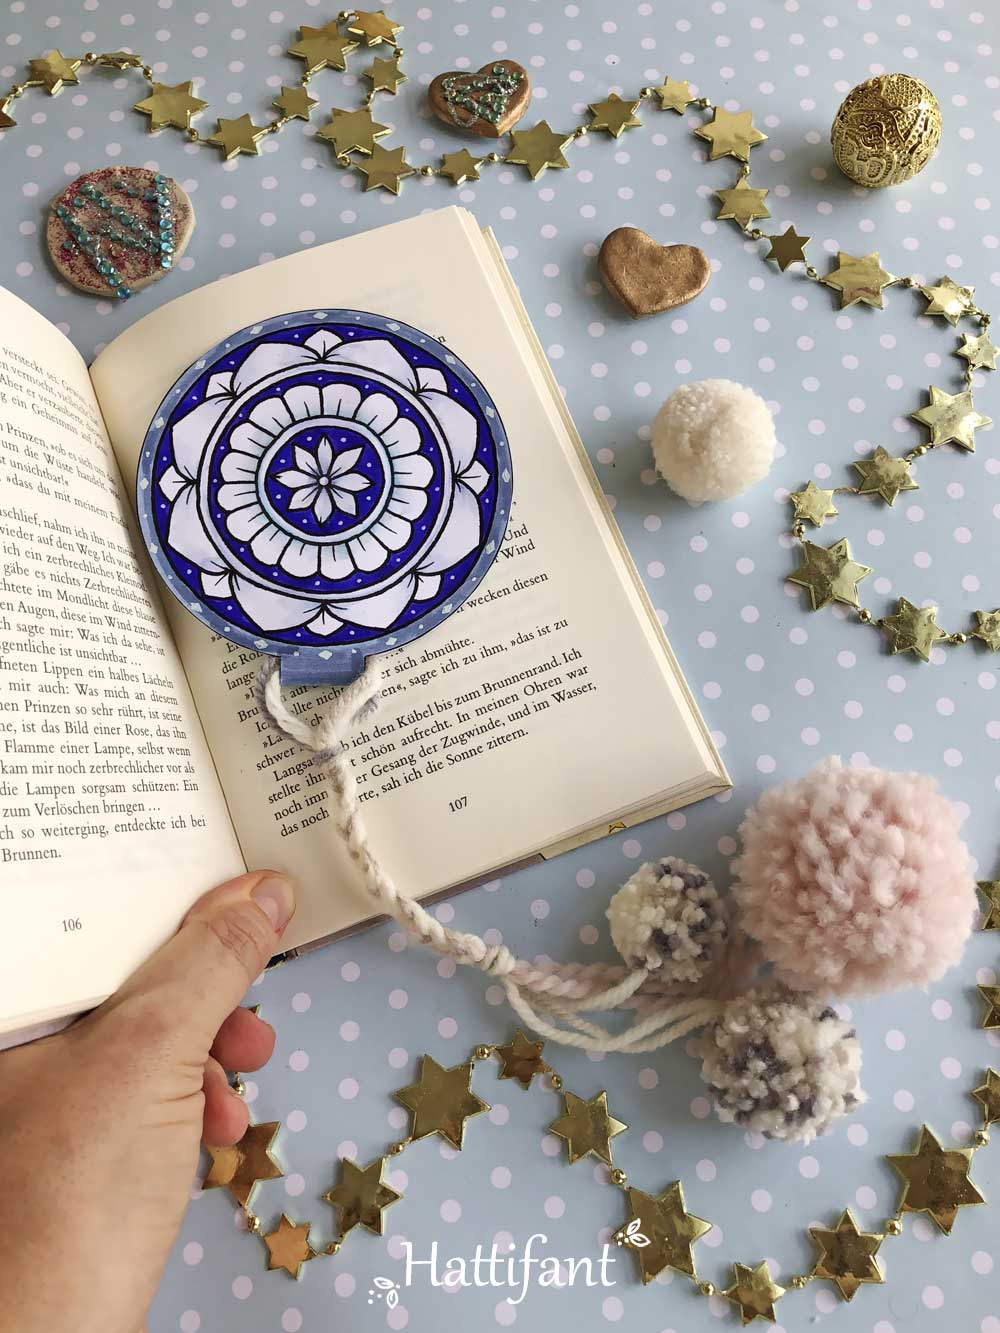 Hattifant's Mandala Pom Pom Bookmark and Ornament